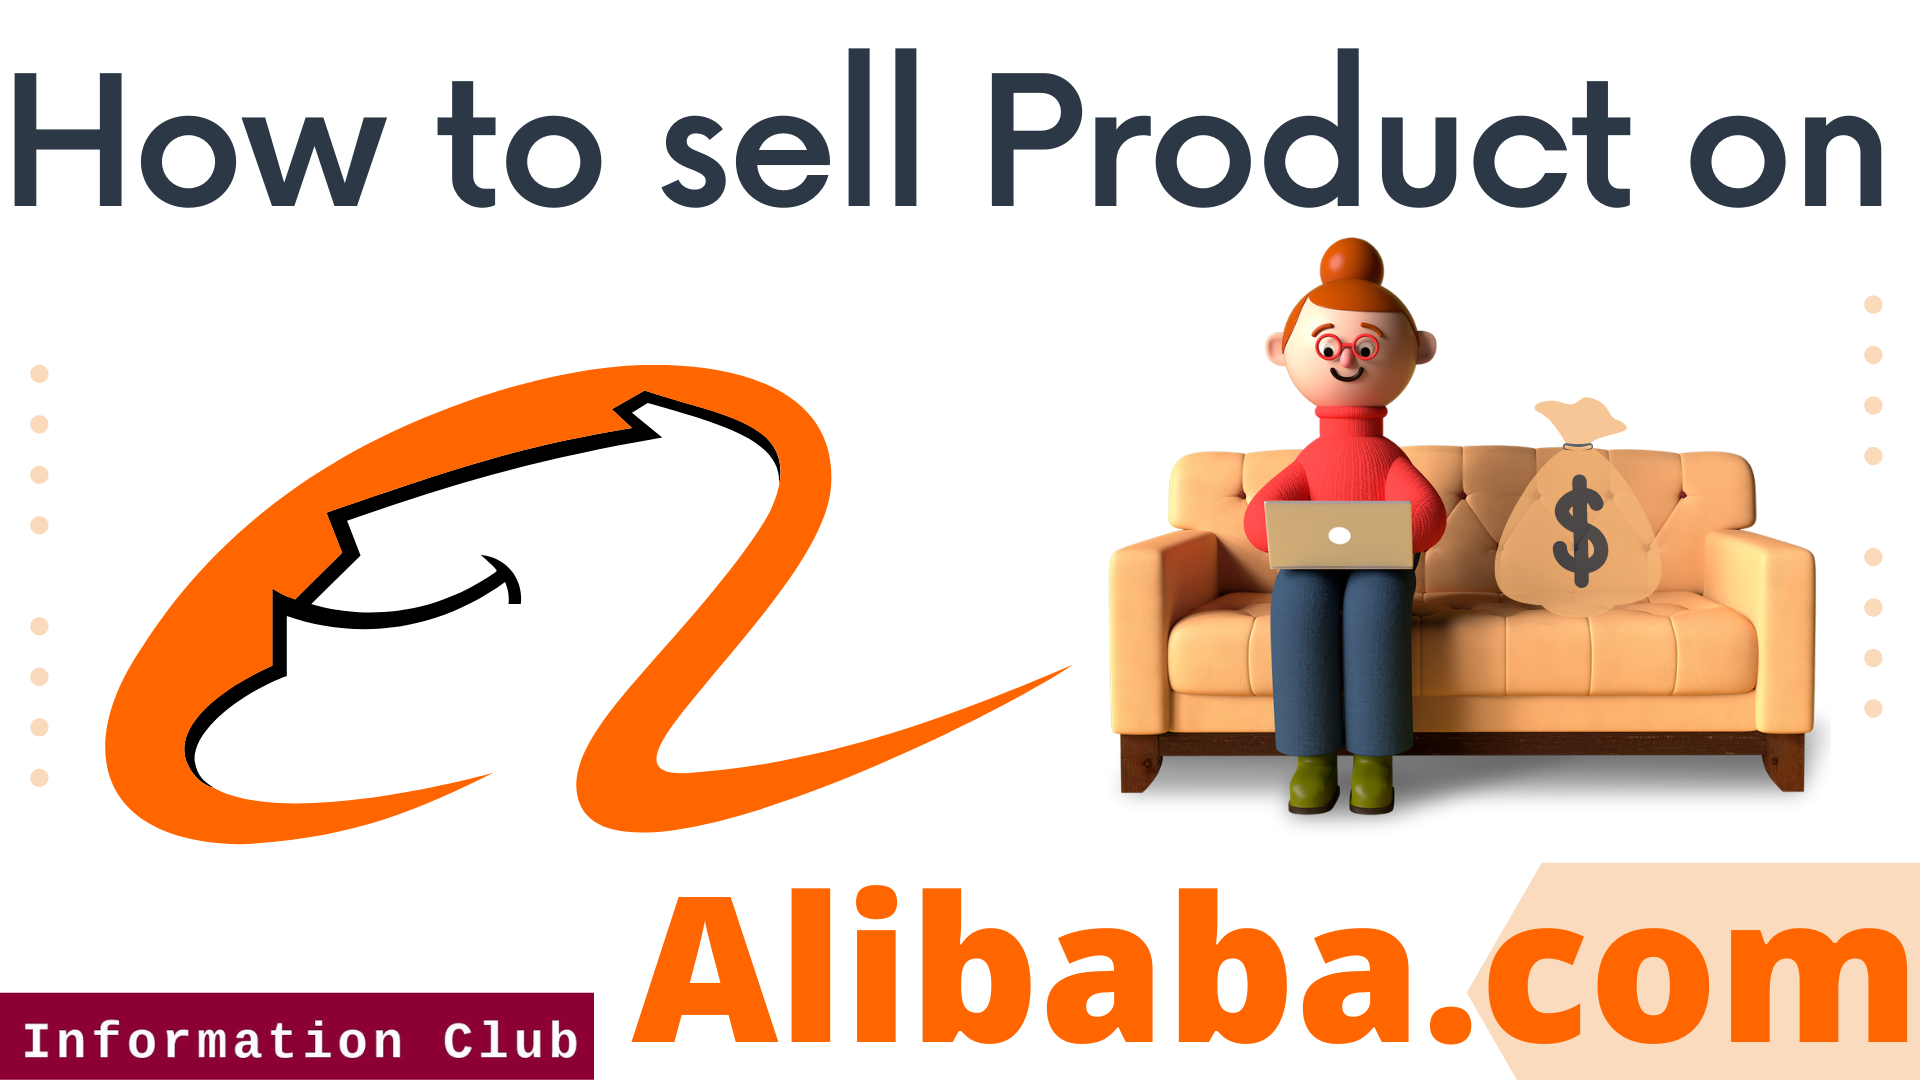 https://www.clubinfonline.com/2020/11/29/how-to-sell-products-on-alibaba/